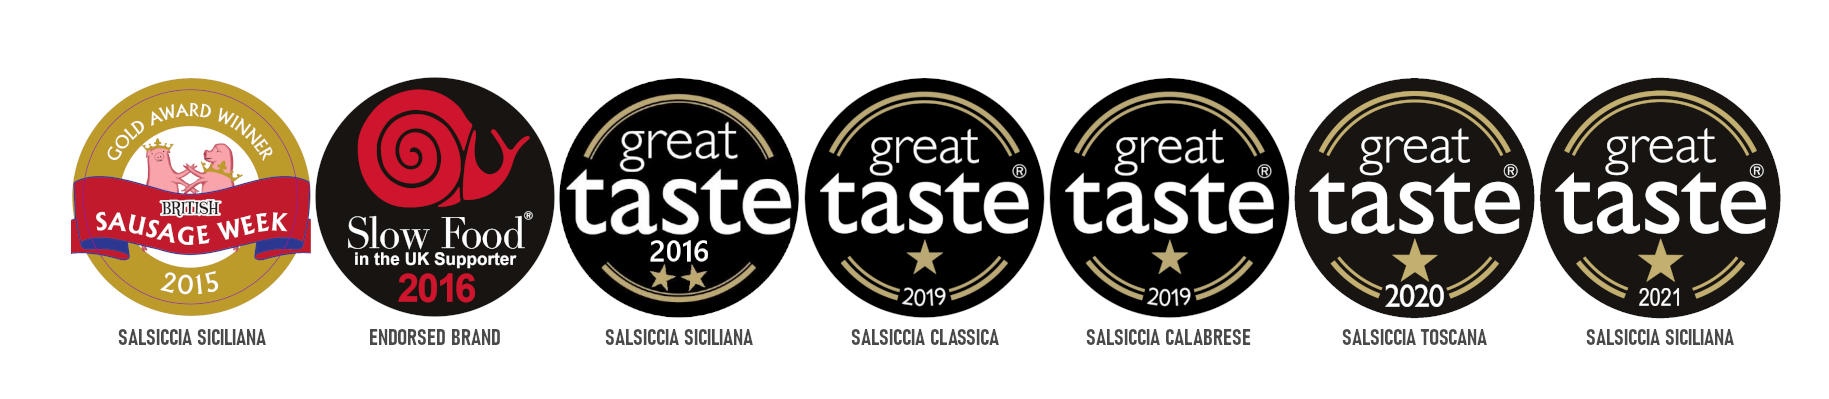 We're delighted to announce that the @guildoffinefood has awarded our Luganega Salsiccia Siciliana, one star ⭐️ respectively at the #GreatTasteAwards 2021. . . . #2021goals #awardwinning #foodawards #foodieuk #foodlove #freshsausage #guildoffinefood #greattasteawards2021 #GreatTaste #guildoffinefood #italiansausage #manufacturer #pickoftheday #products #producer #salsicciamo #sausagelovers #sausages #siciliana #siciliansausage #ukproduce